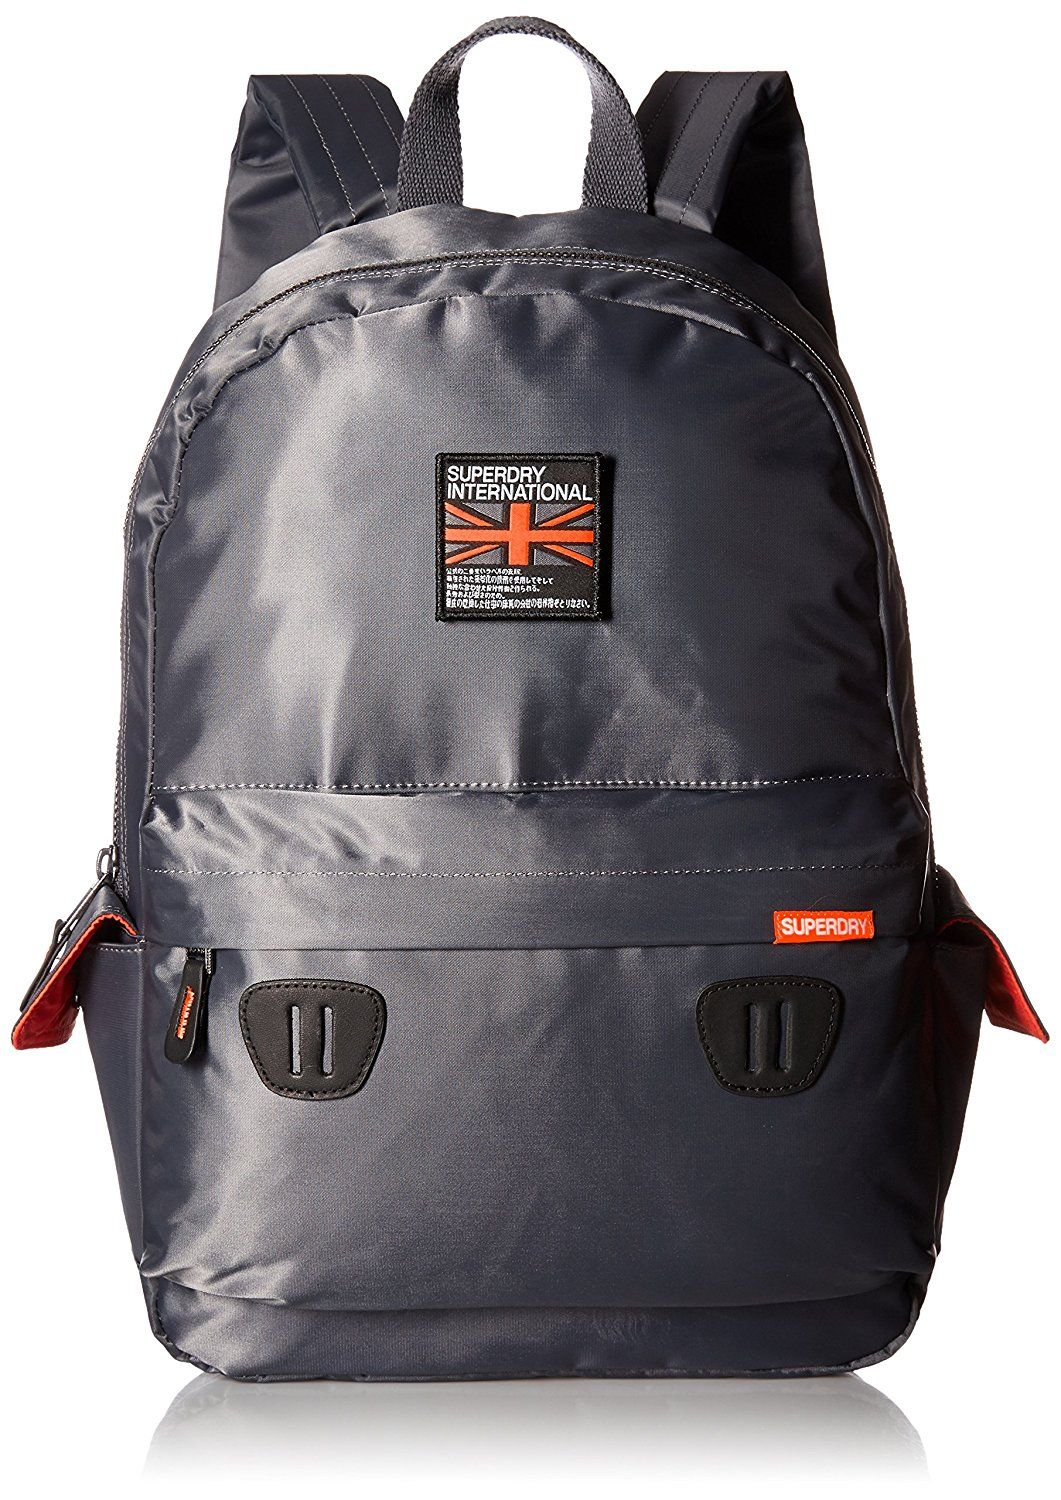 Superdry Men S Sd Backpack Grey One Size Investment Ping Mochilas Bolsas Mochila